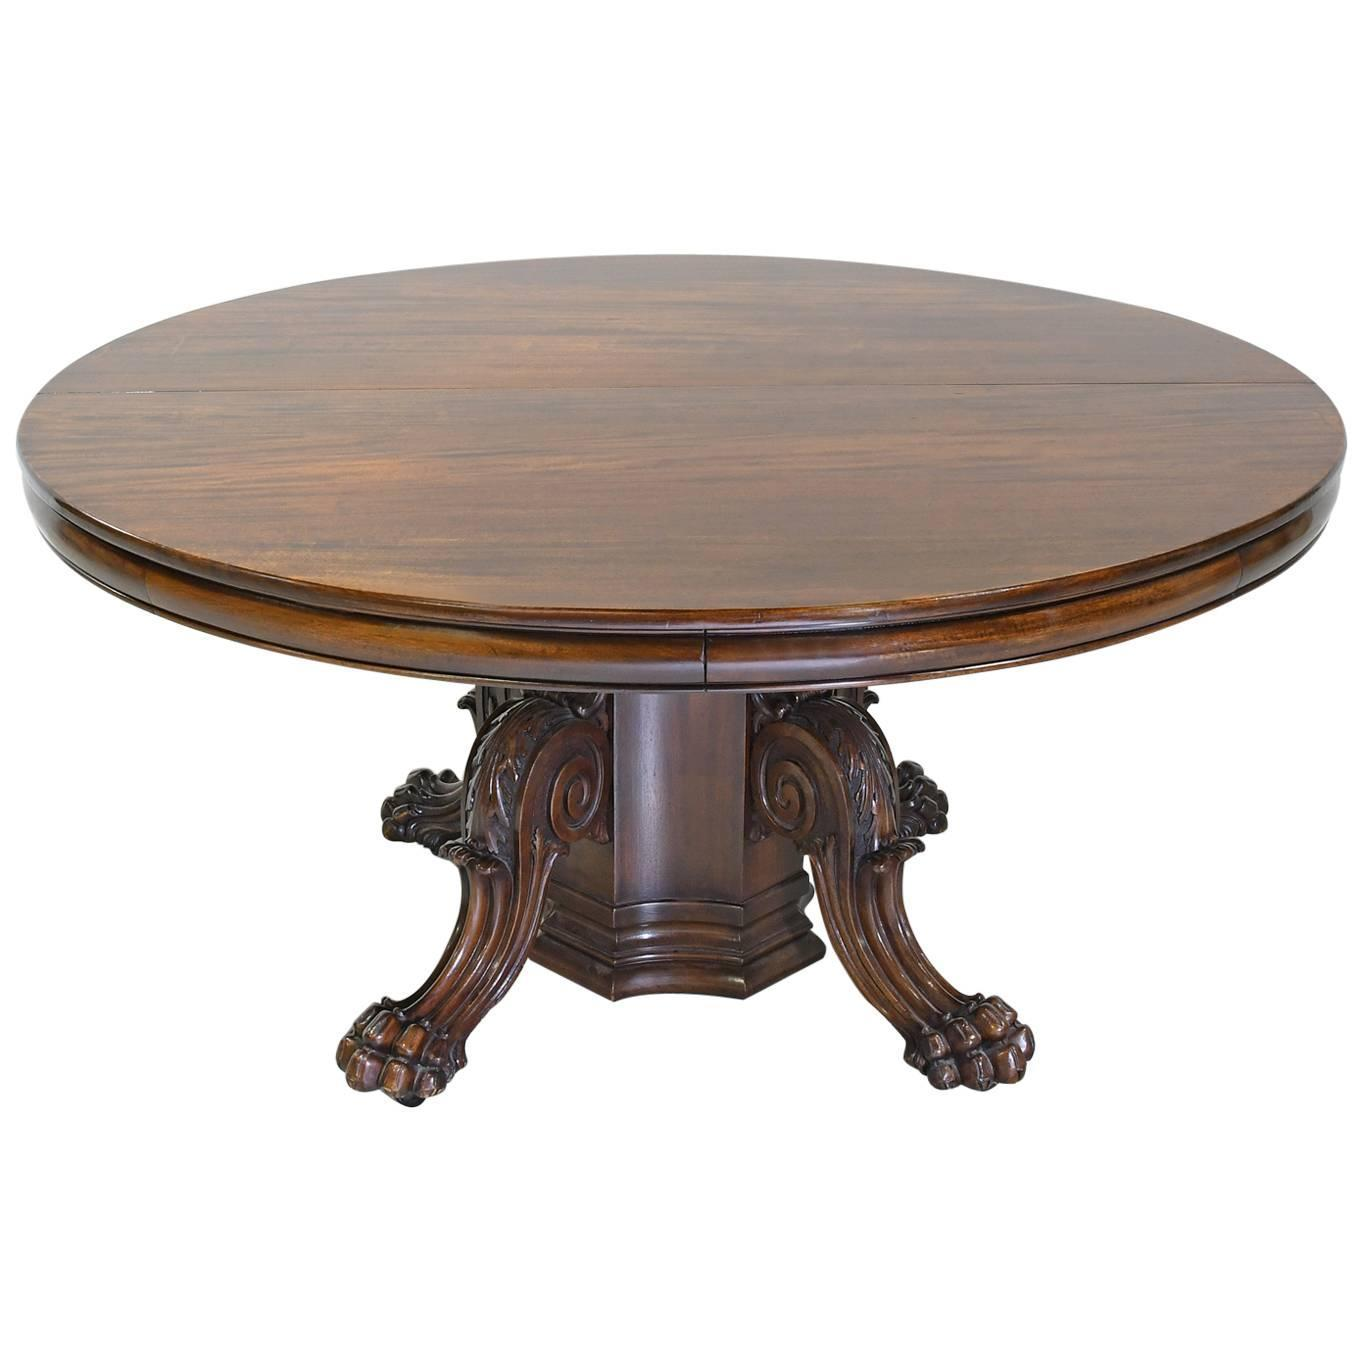 Round american empire center pedestal dining table with for Round pedestal table with leaf